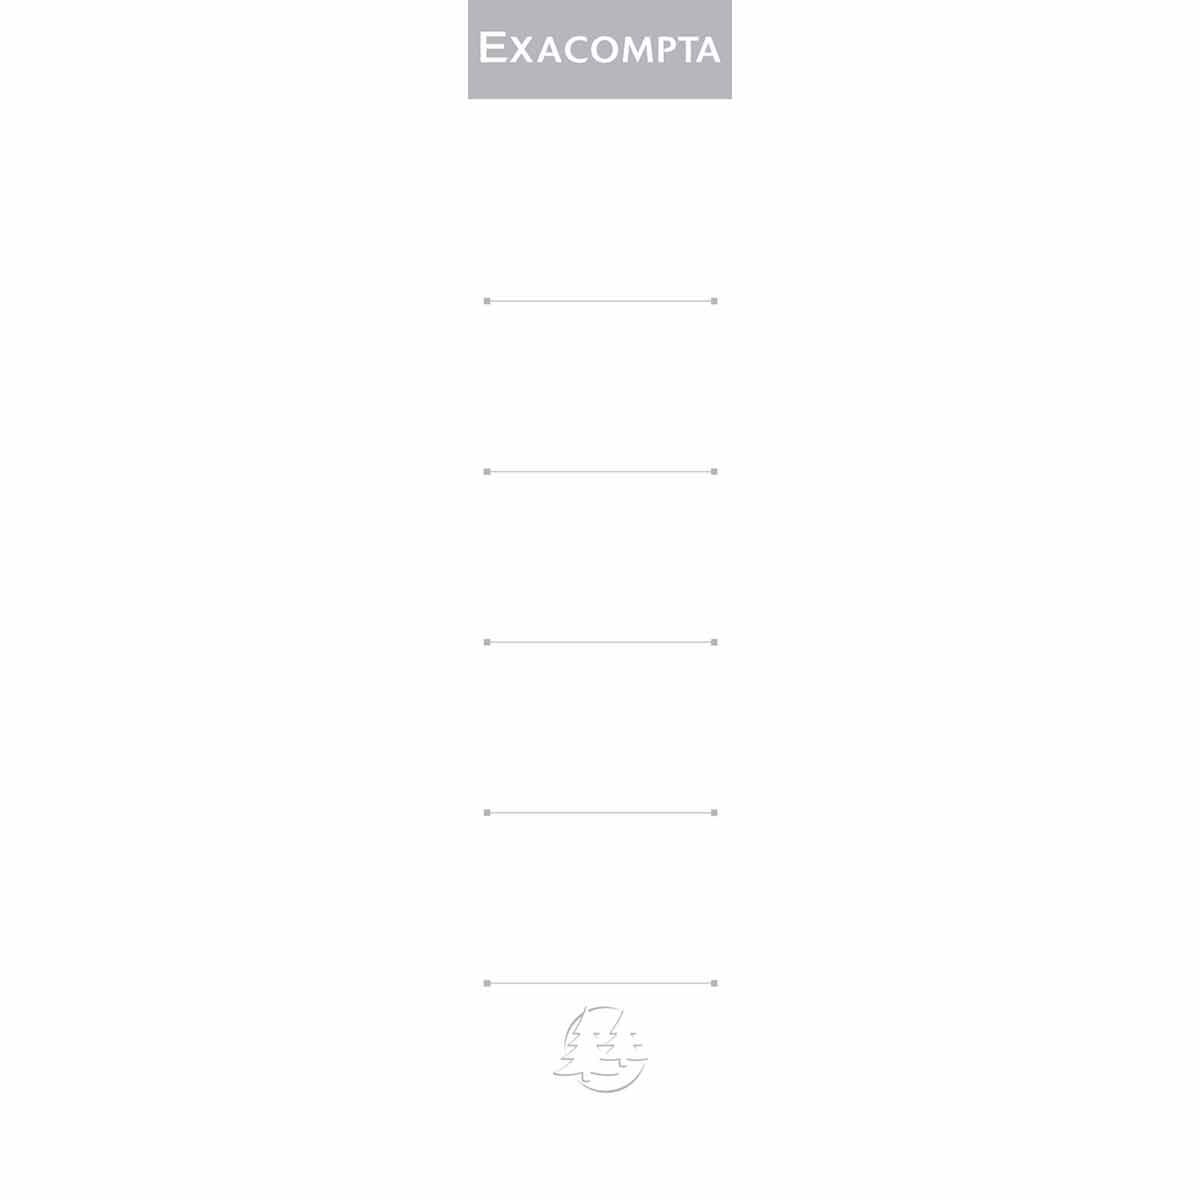 Exacompta Lever Arch File Spine 50mm Labels Pack of 10